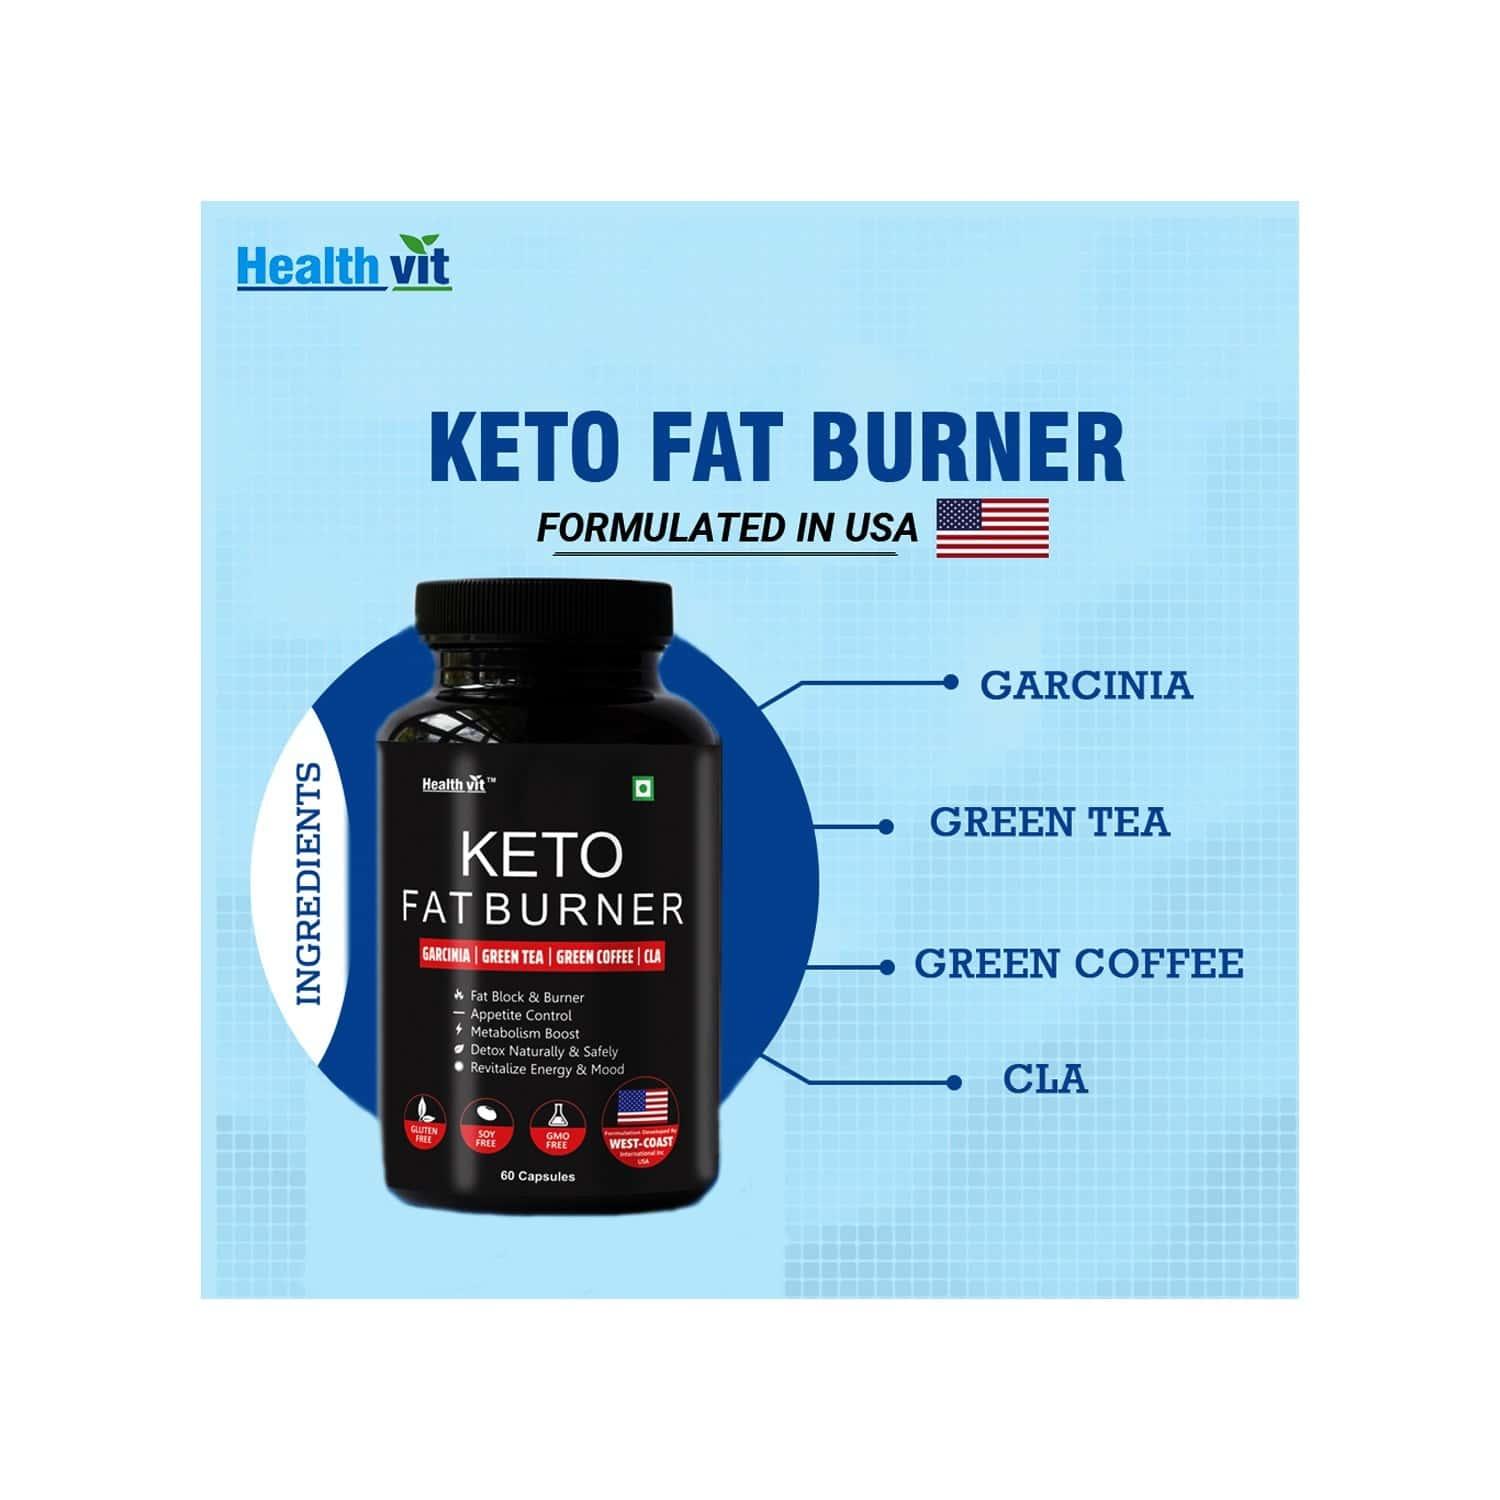 Healthvit Keto Fat Burner Formulated In Usa With Garcinia, Green Tea, Green Coffee, Cla -60 Capsules